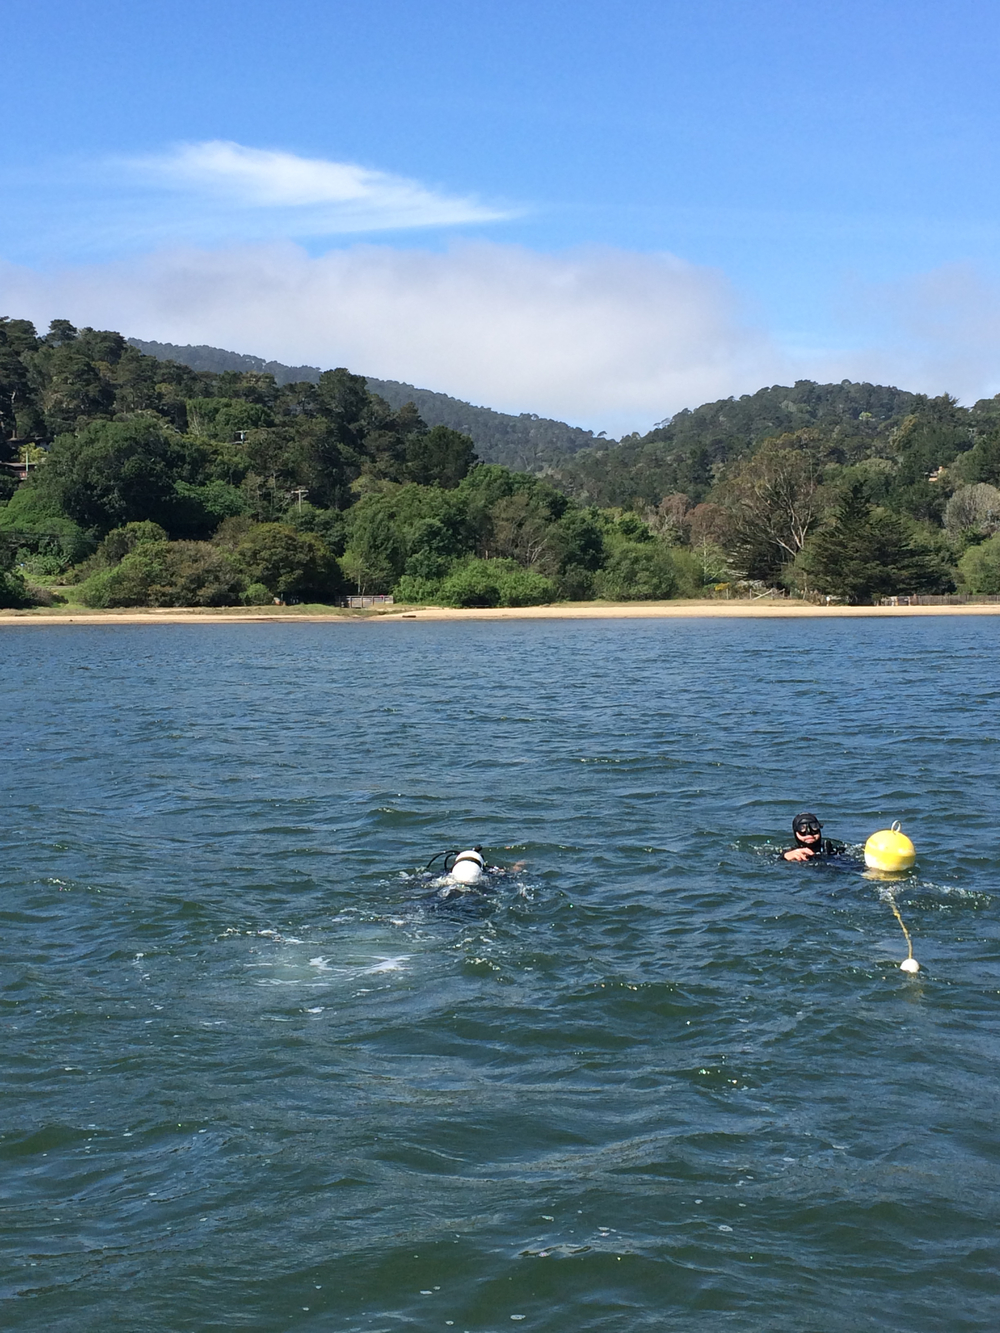 Grant Susner and David Dann deploying sensors in Tomales Bay